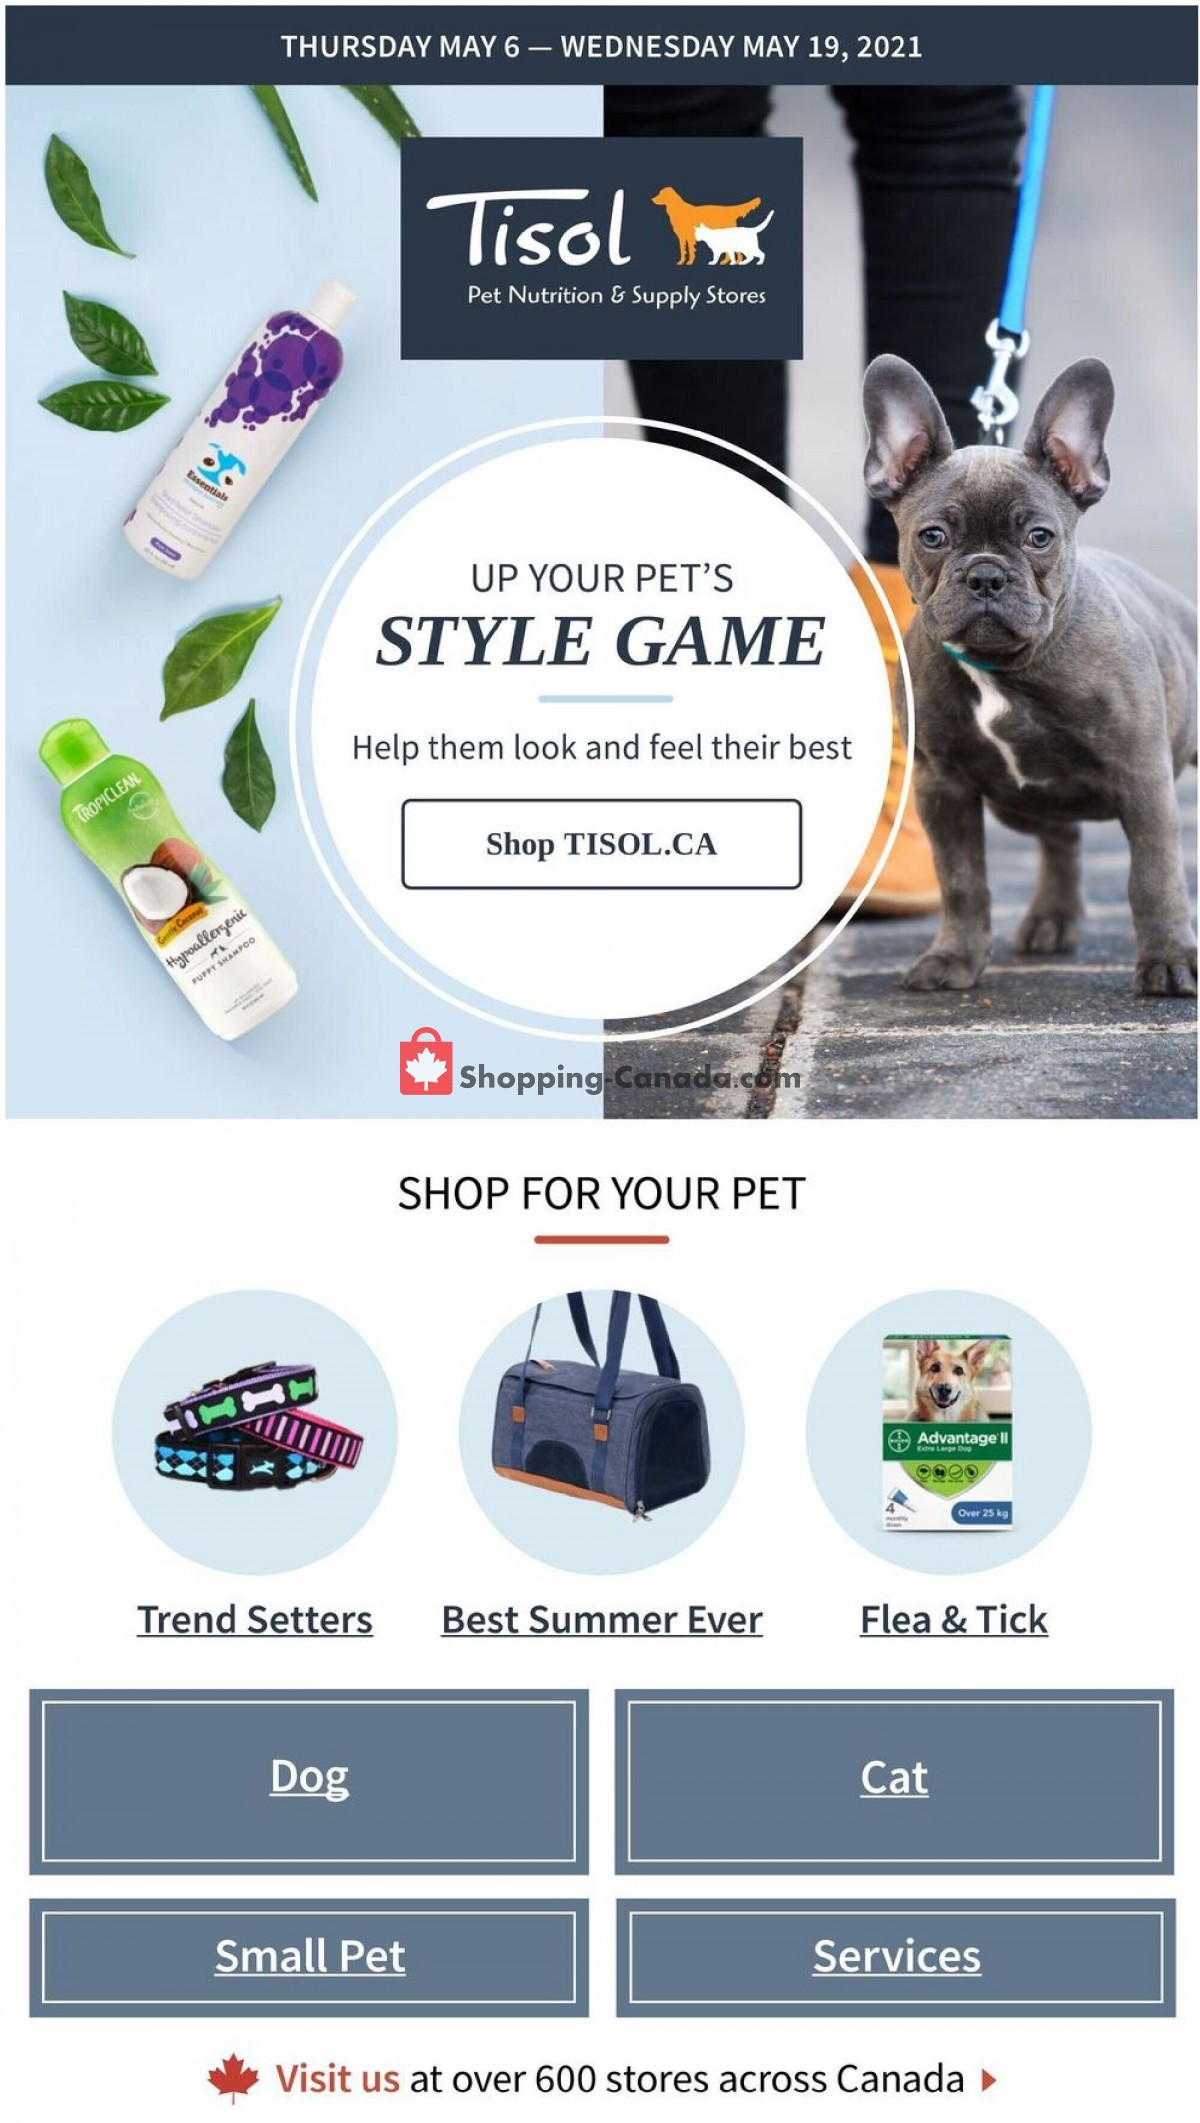 Flyer Tisol Pet Nutrition And Supply Stores Canada - from Thursday May 6, 2021 to Wednesday May 19, 2021